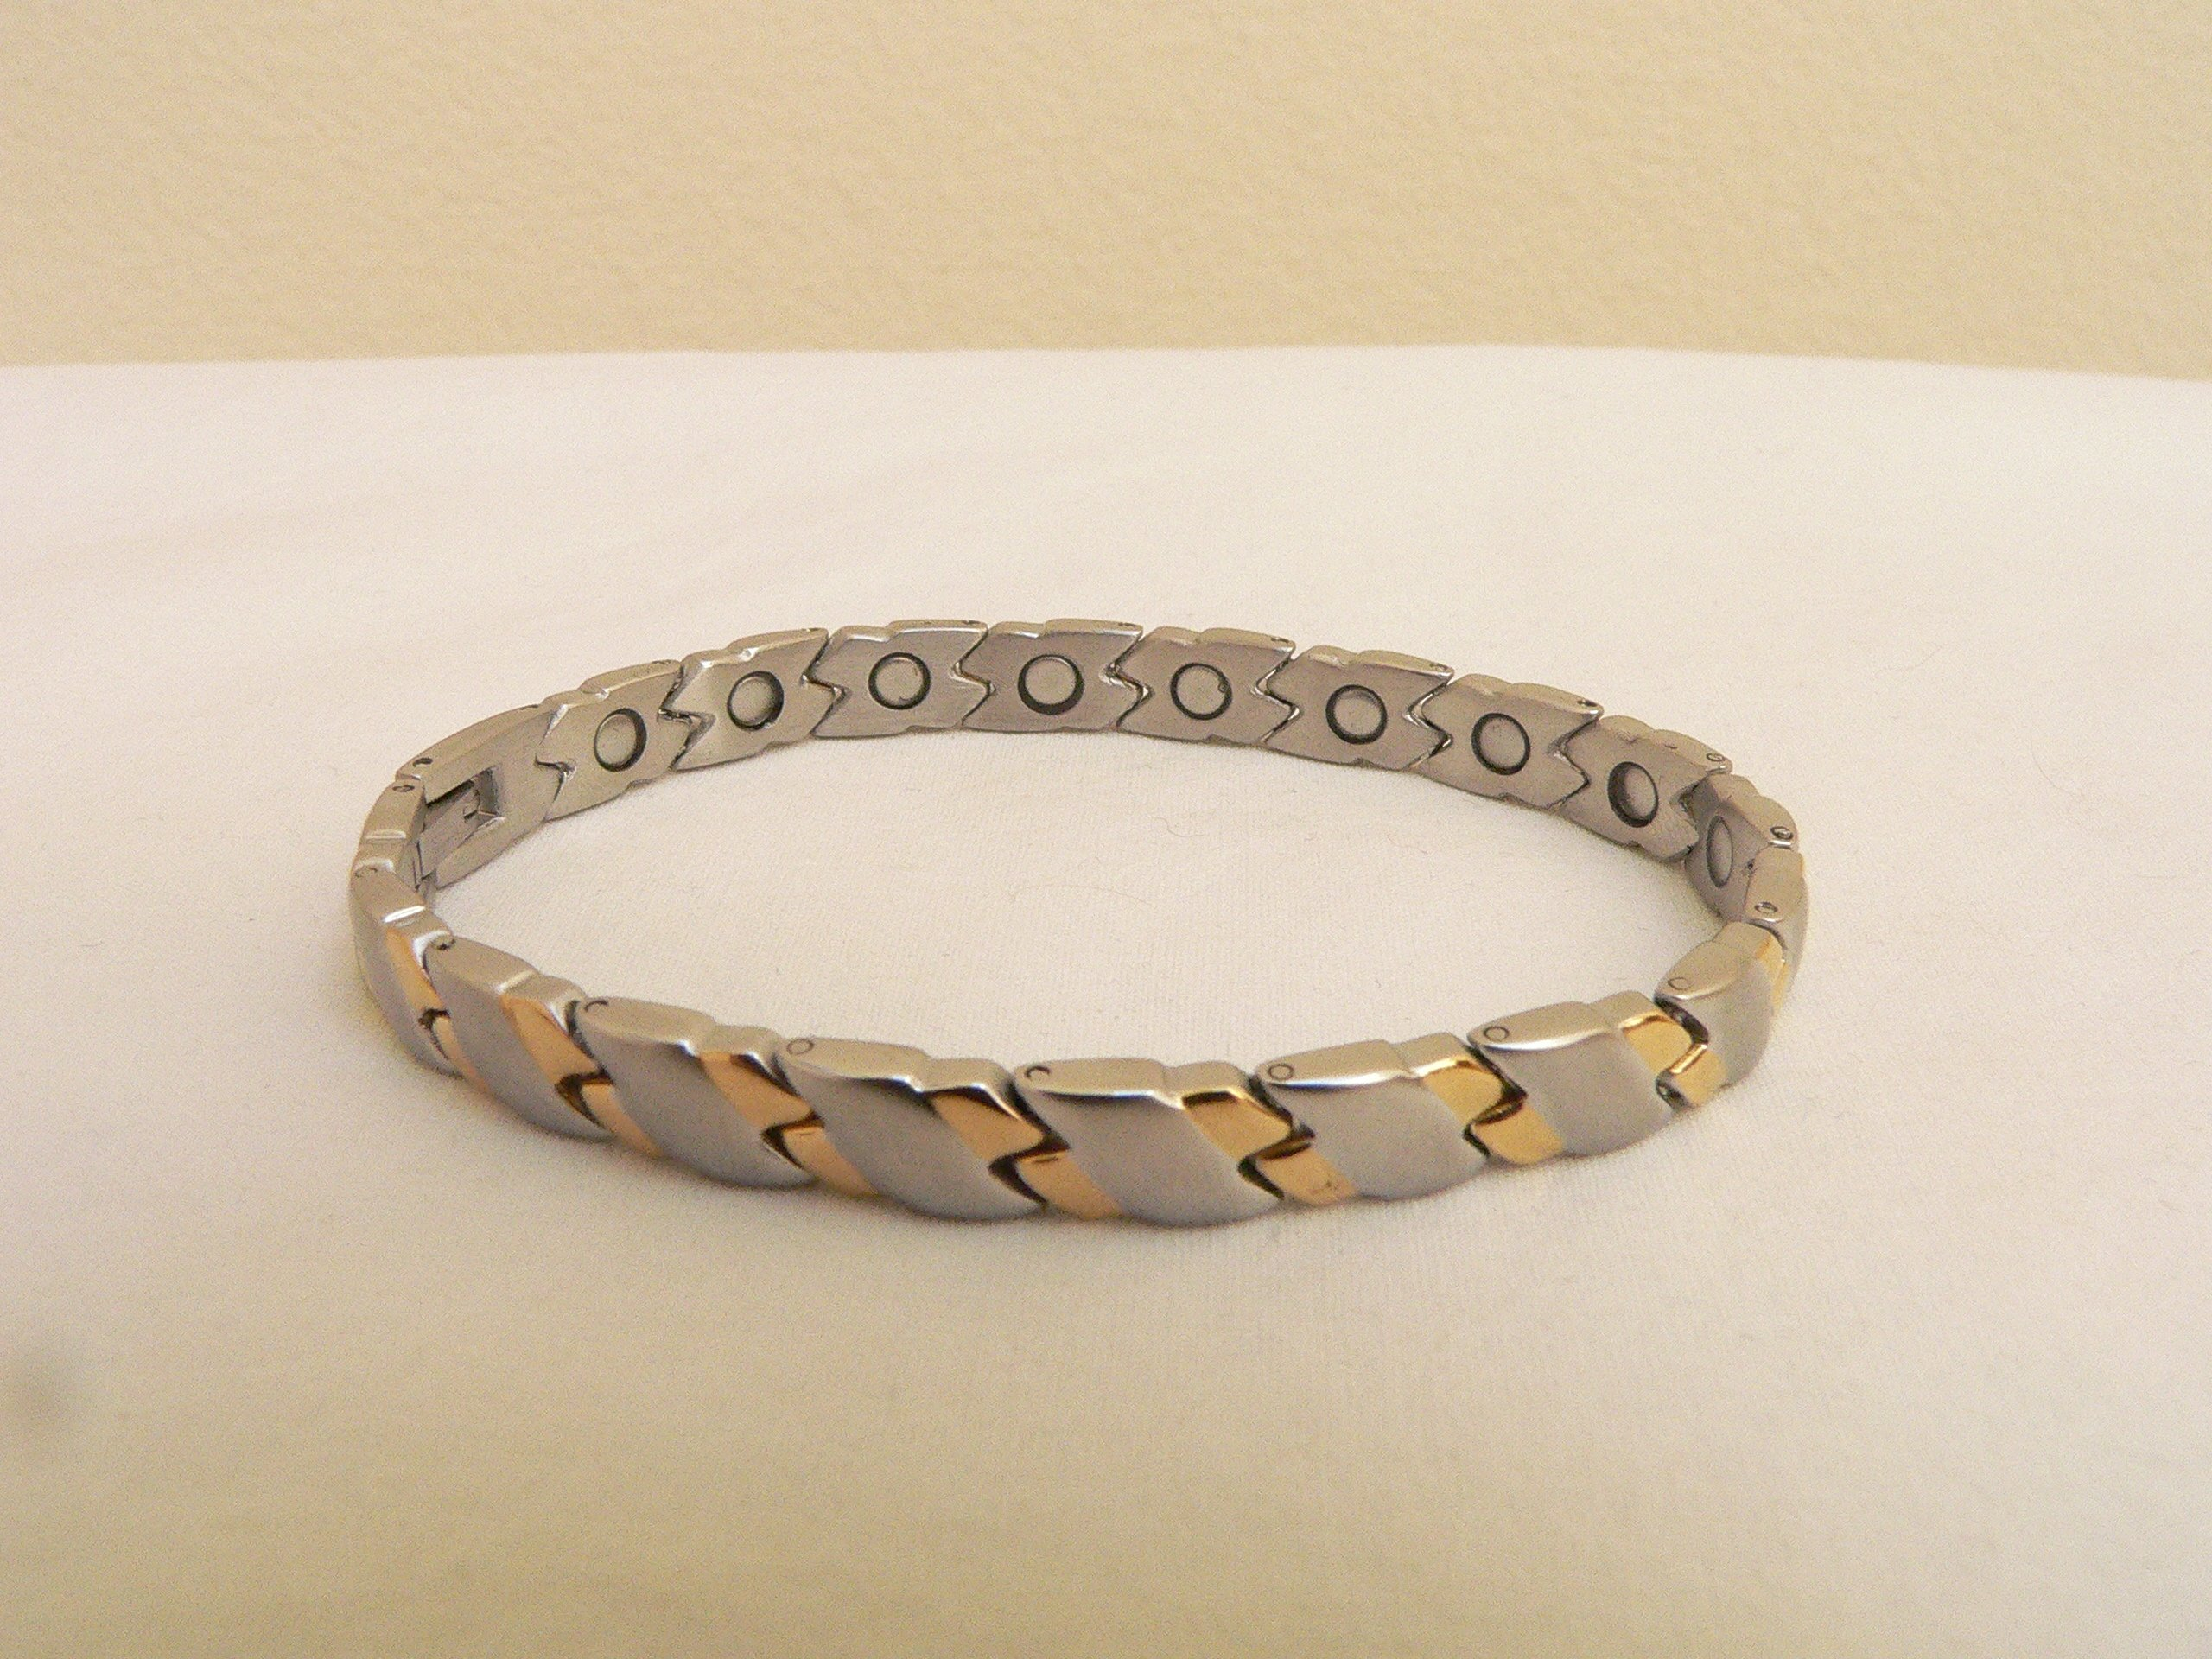 Magnetic Therapy Stainless Steel Magnetic Bracelet ~ Celebrities and Golfers Power Bracelet ~ Size: 7 5/8 Inch. Long, 1/4 Inch. Wide